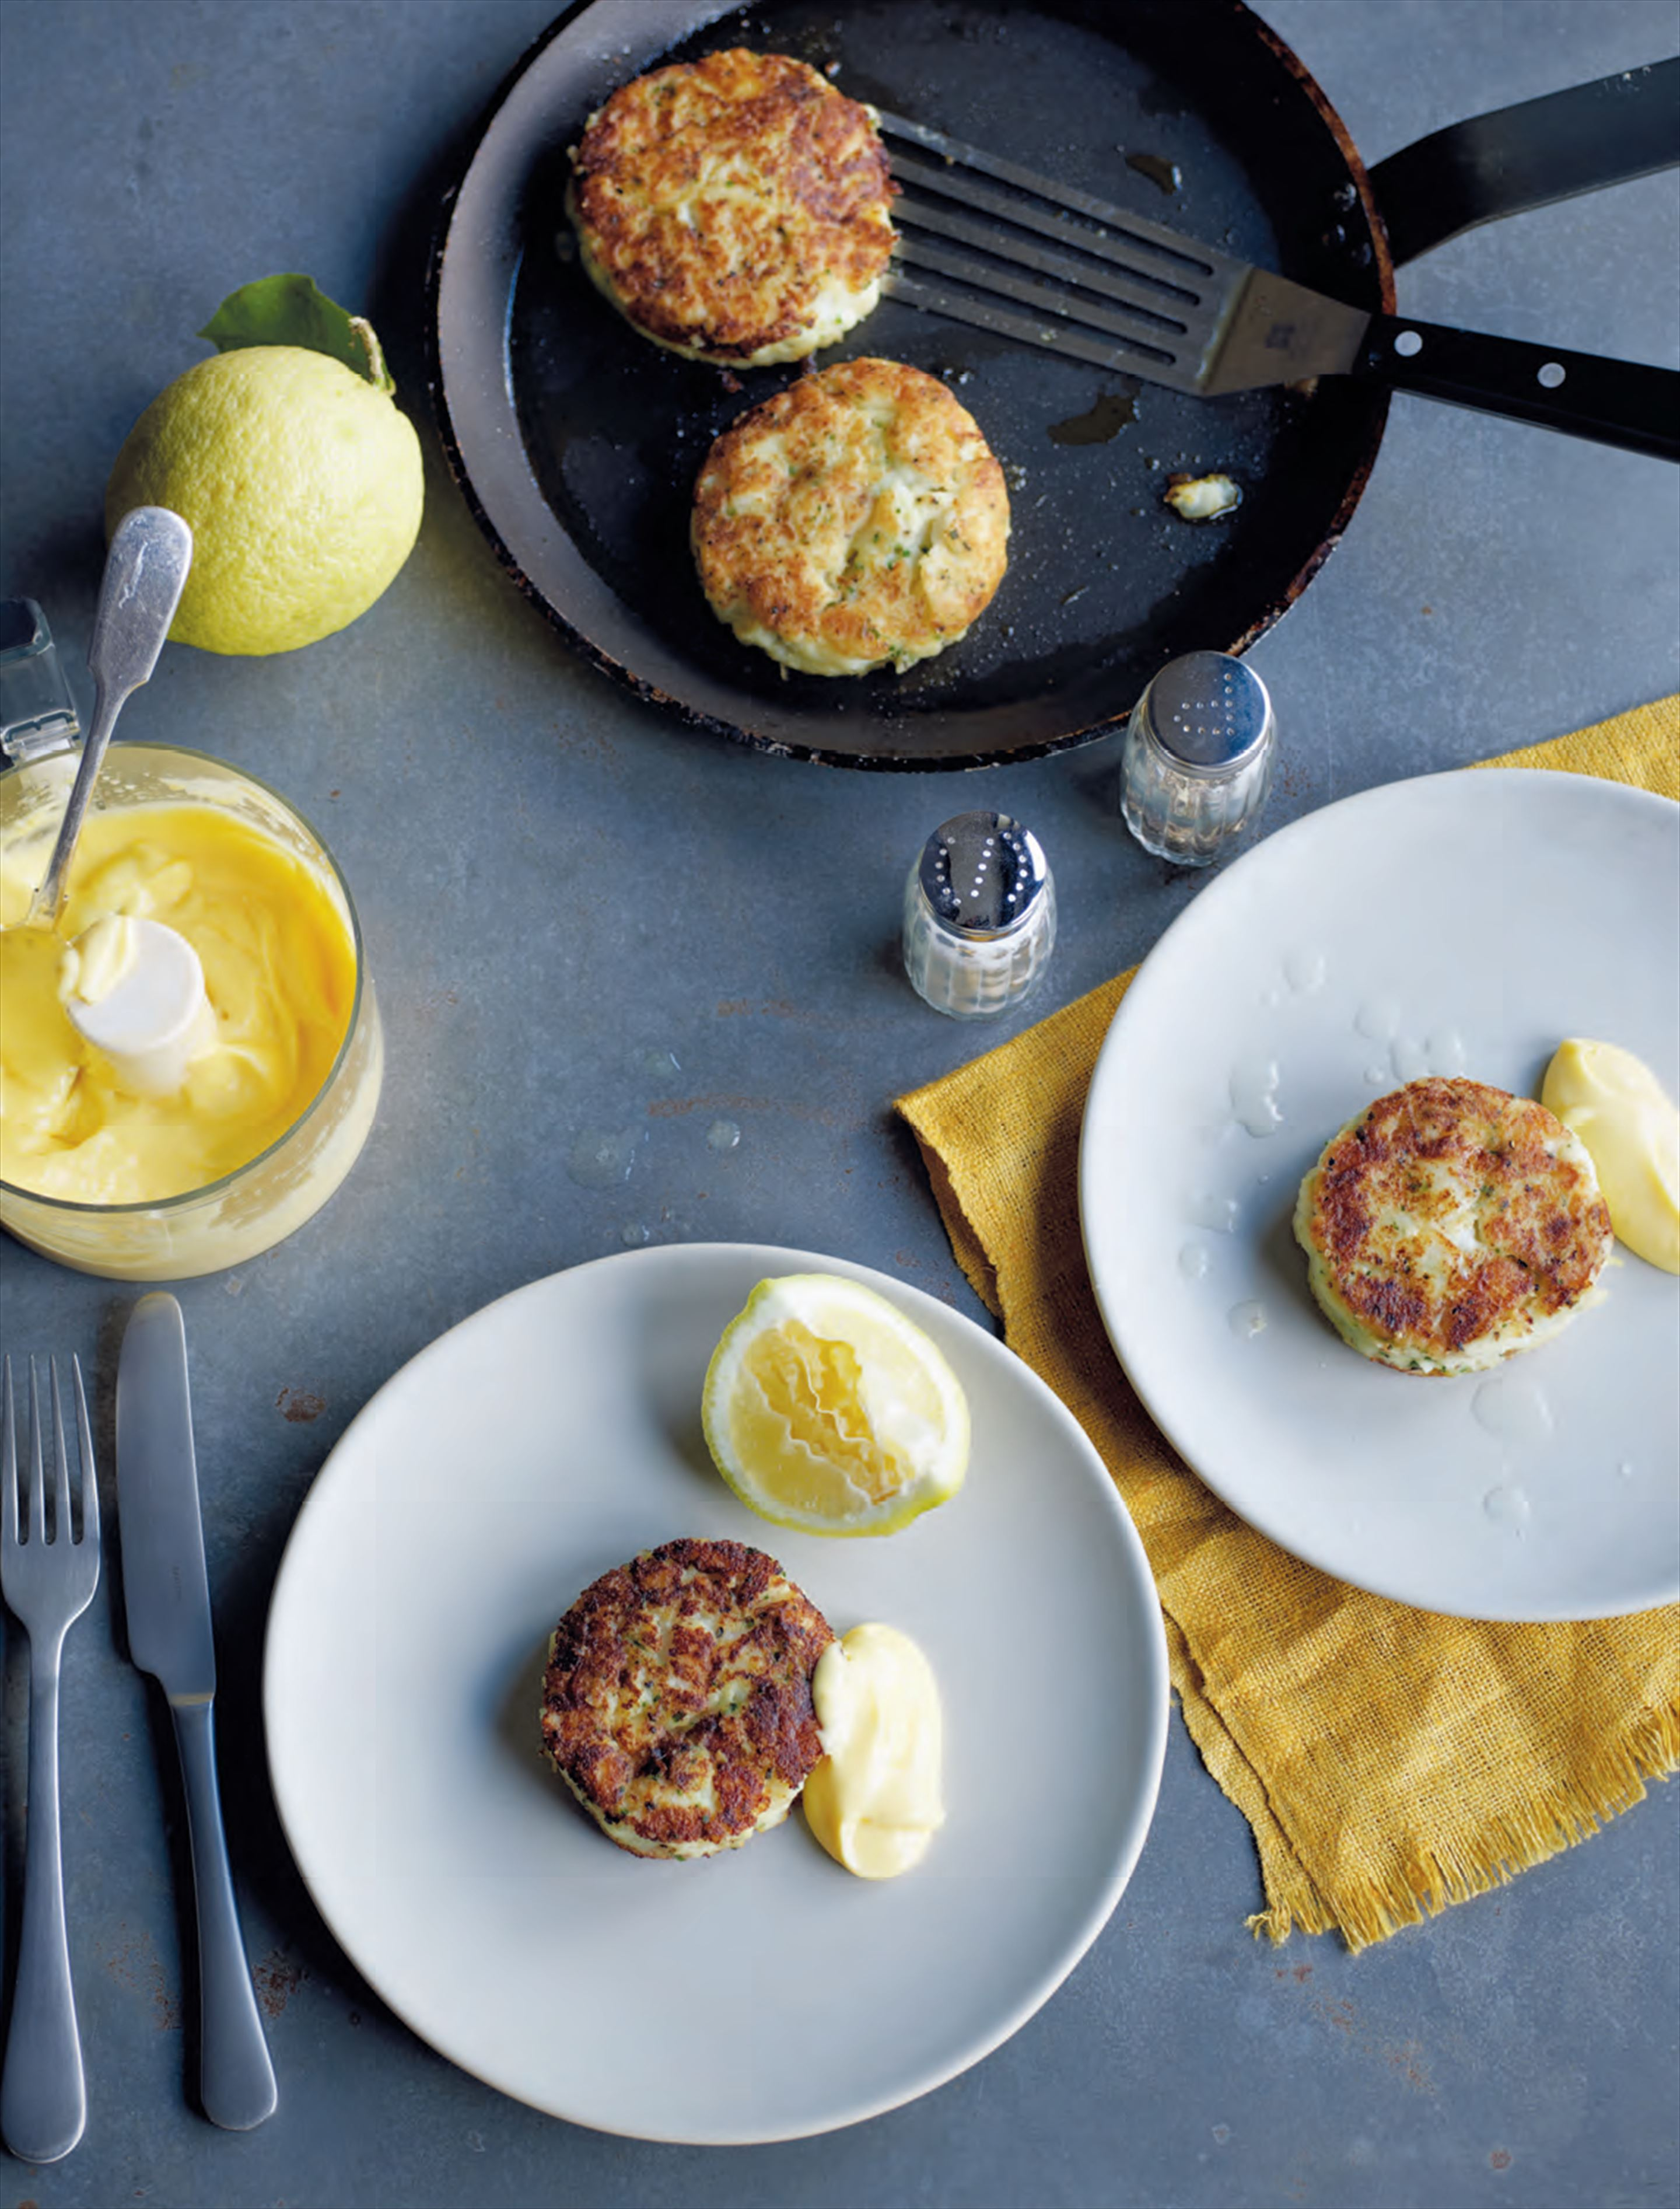 Smoked haddock & herb fish cakes with quick hollandaise